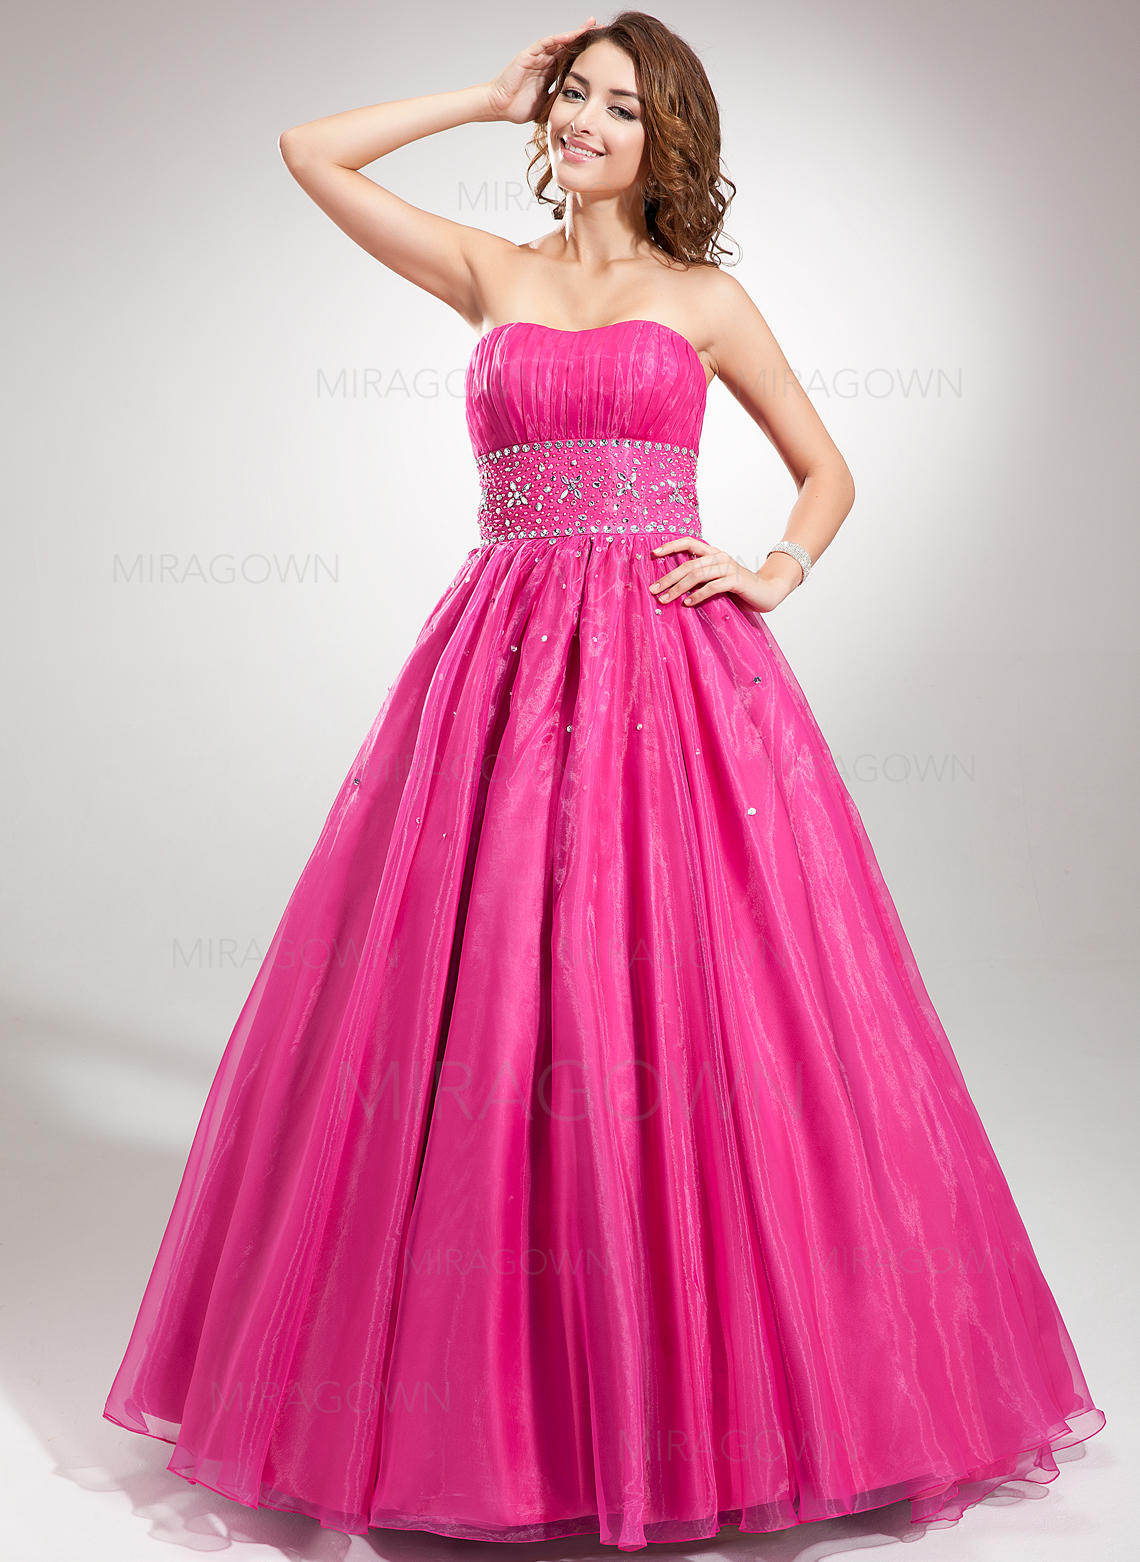 0d8a49d324 Ball-Gown Organza Prom Dresses Ruffle Beading Sweetheart Sleeveless  Floor-Length (018135523). Loading zoom